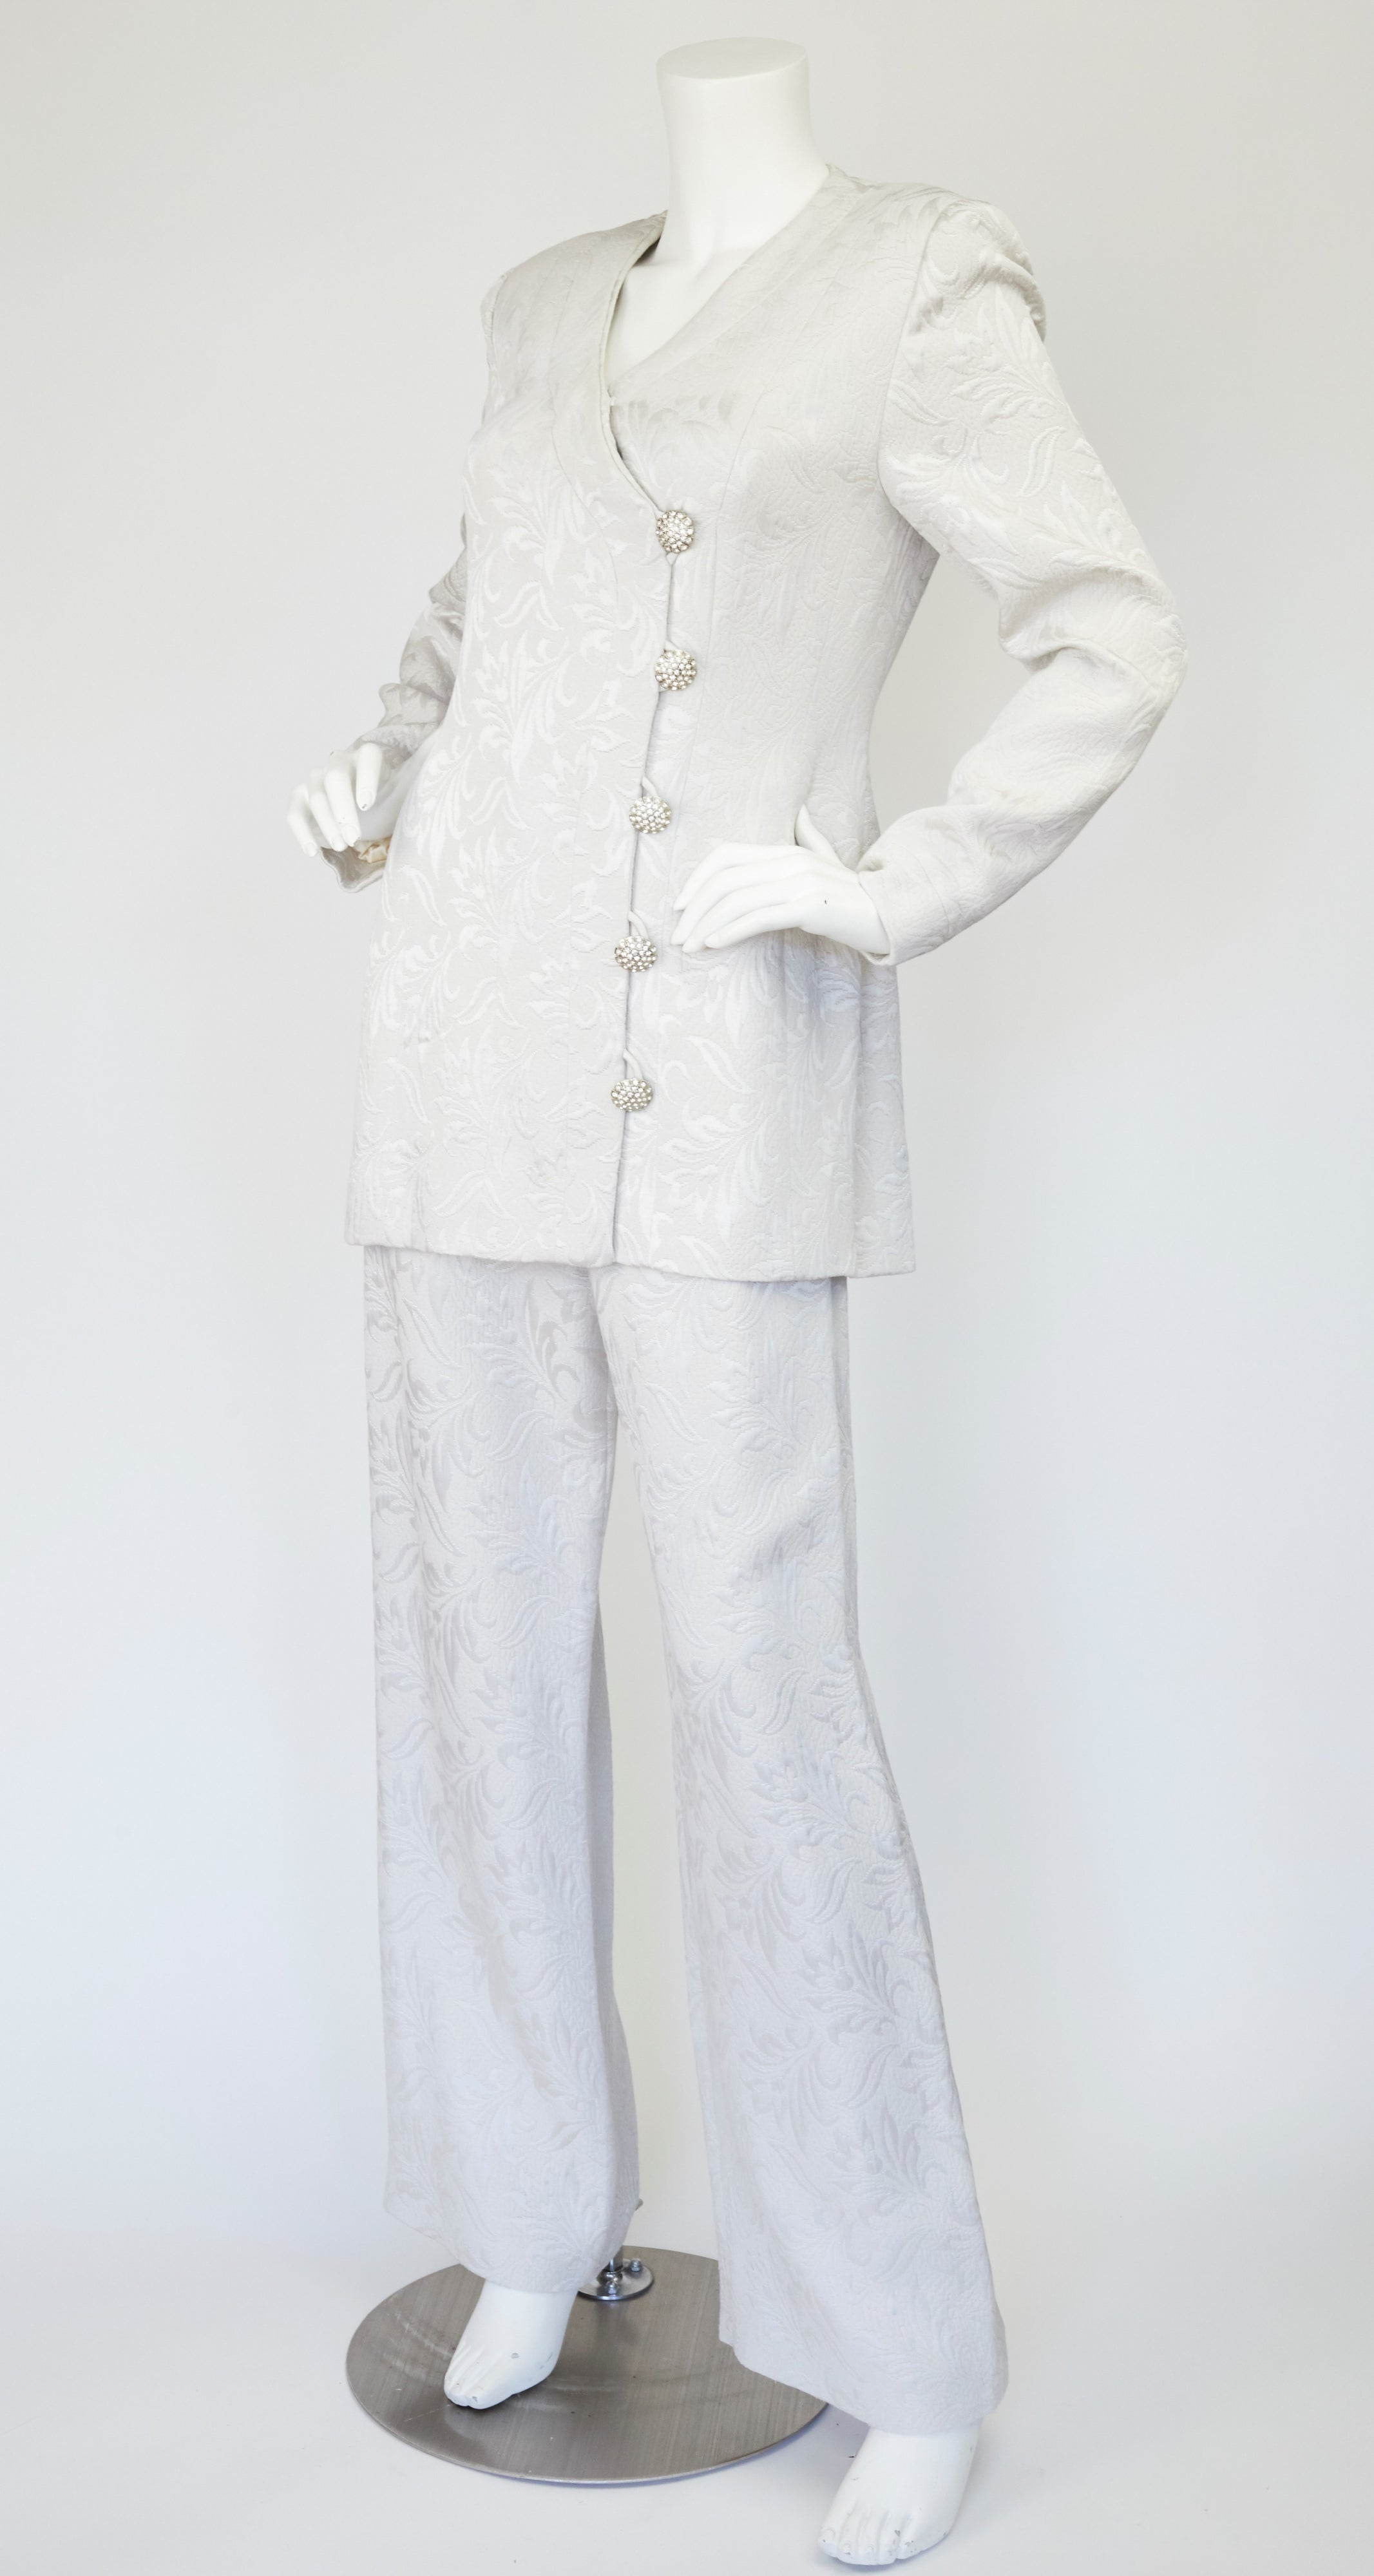 1980s Rhinestone Button Silver Silk Brocade Pant Suit